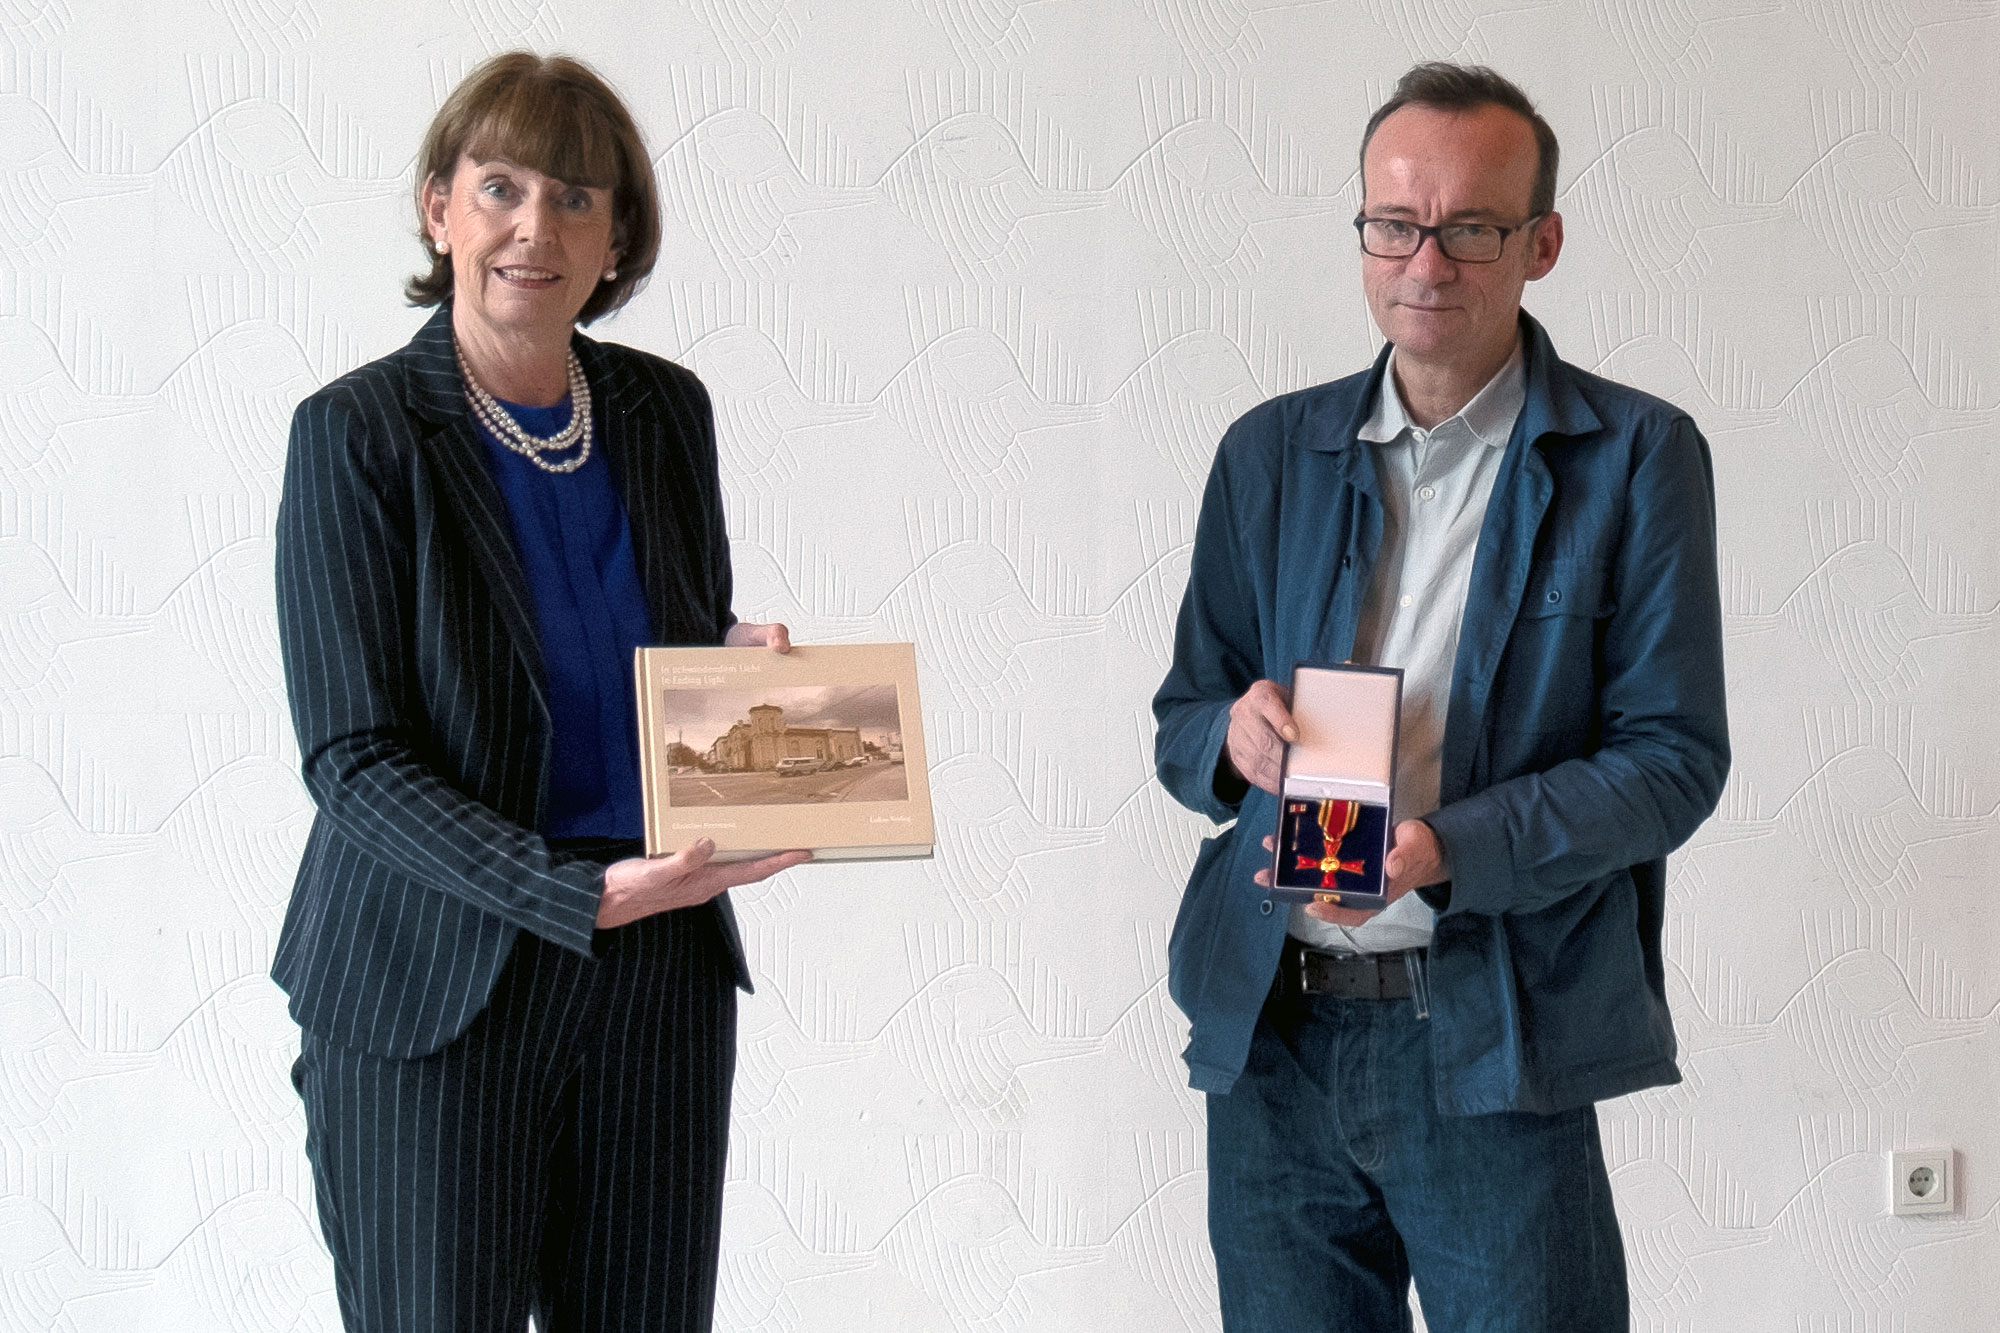 Cologne's Lord Mayor Henriette Reke and I during the award ceremony